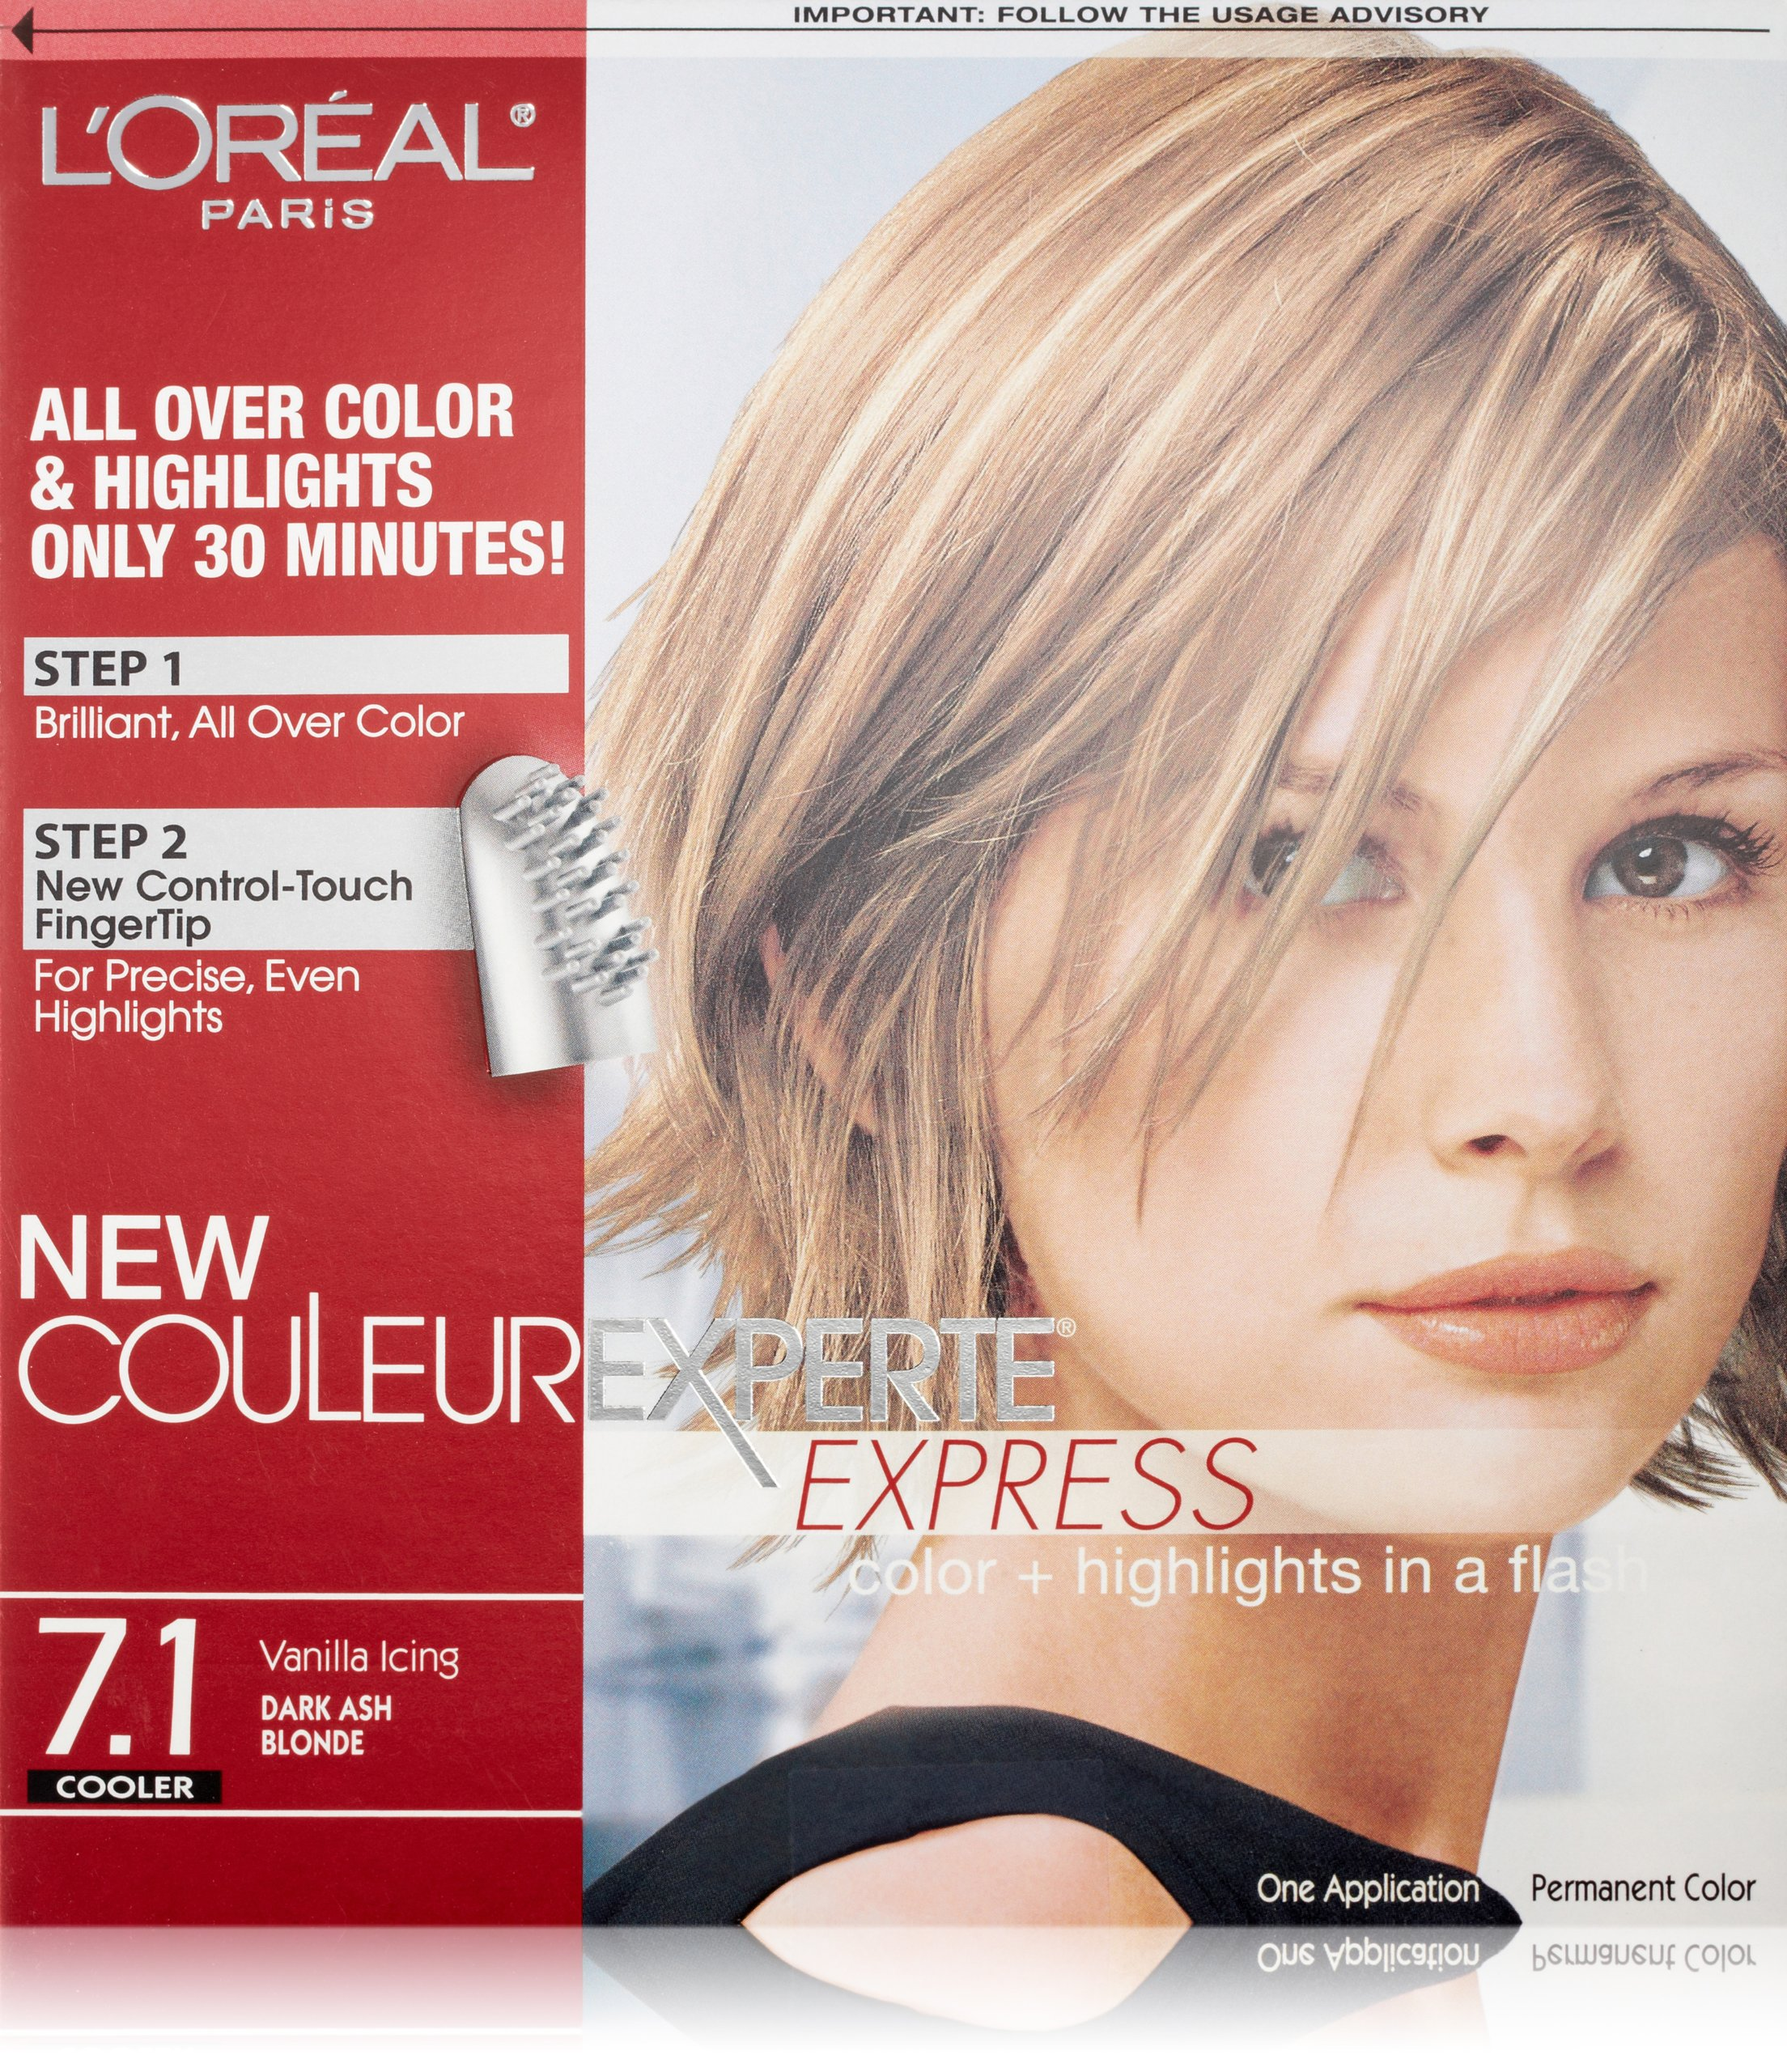 L'Oreal Paris Couleur Experte Color + Highlights in a Flash, Dark Ash Blonde - Vanilla Icing by L'Oreal Paris